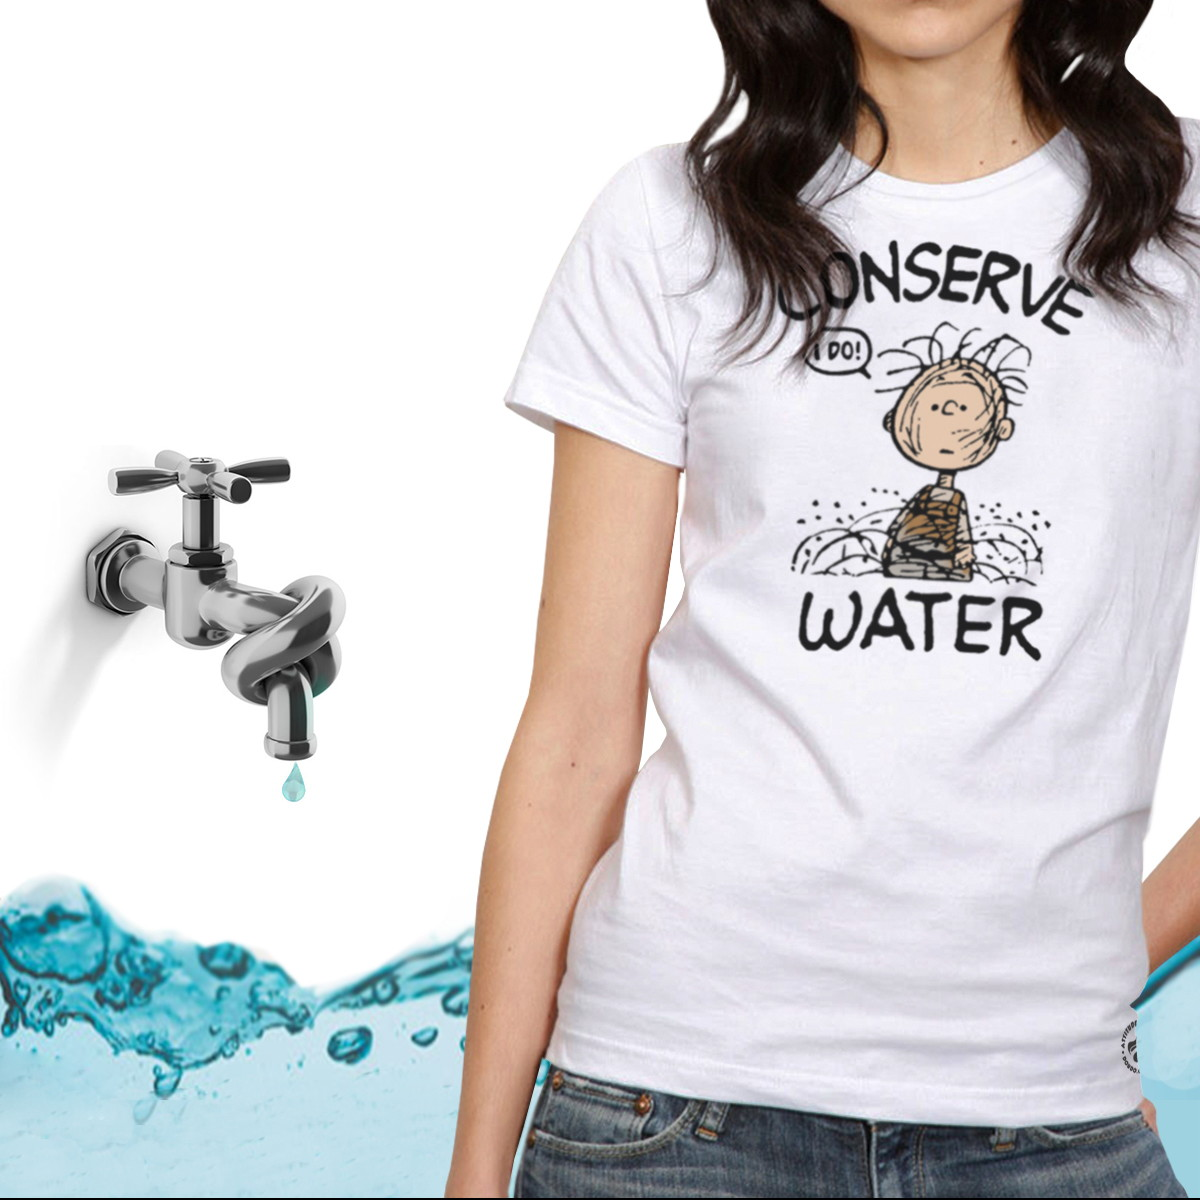 Camiseta Feminina Conserve Water Minduim no Elo7  60e9be172be23